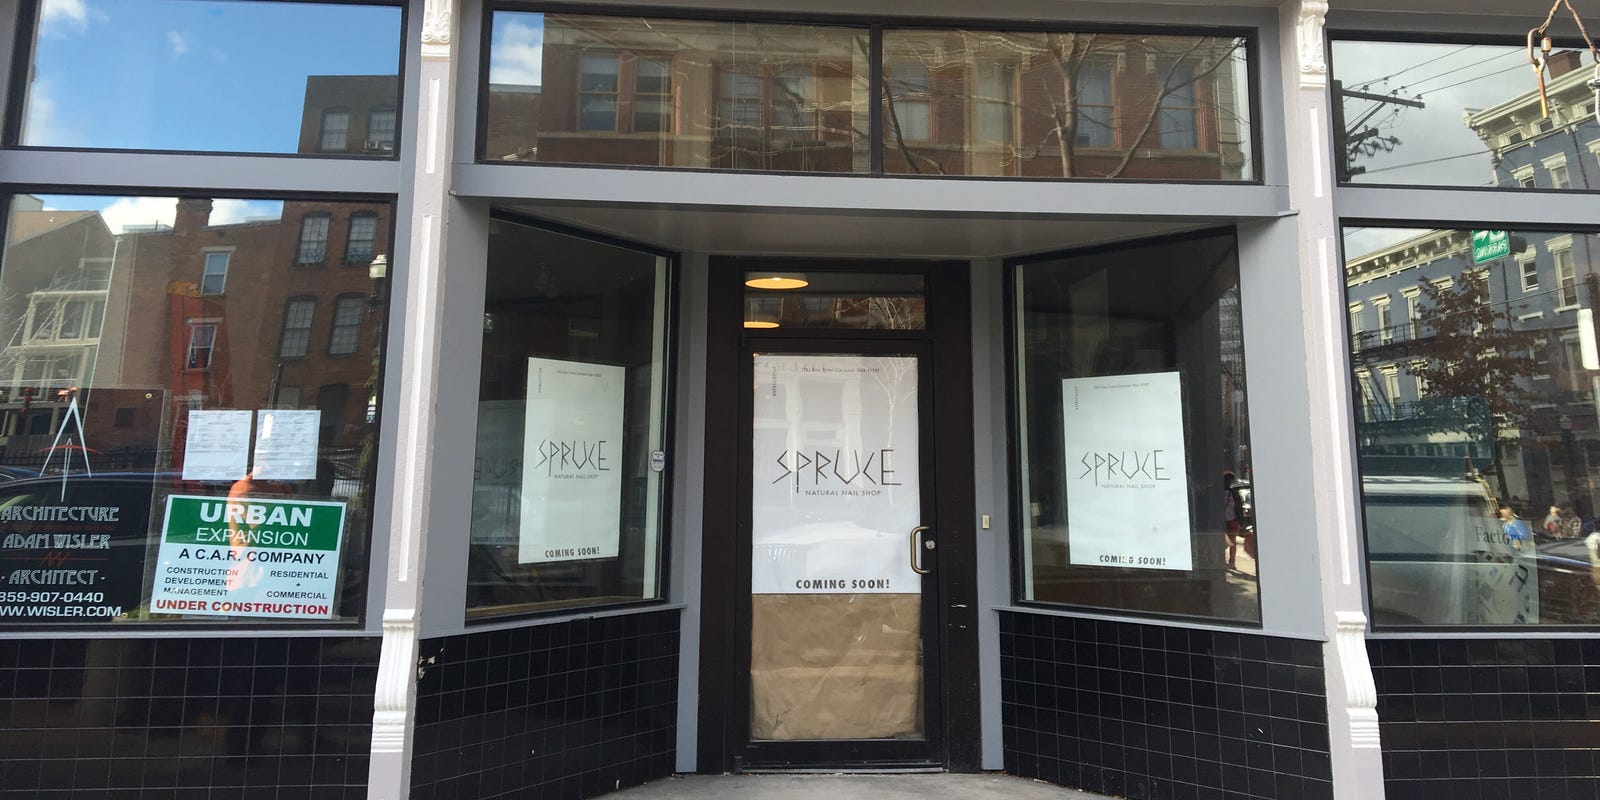 New in Retail: OTR nail shop offers natural atmosphere